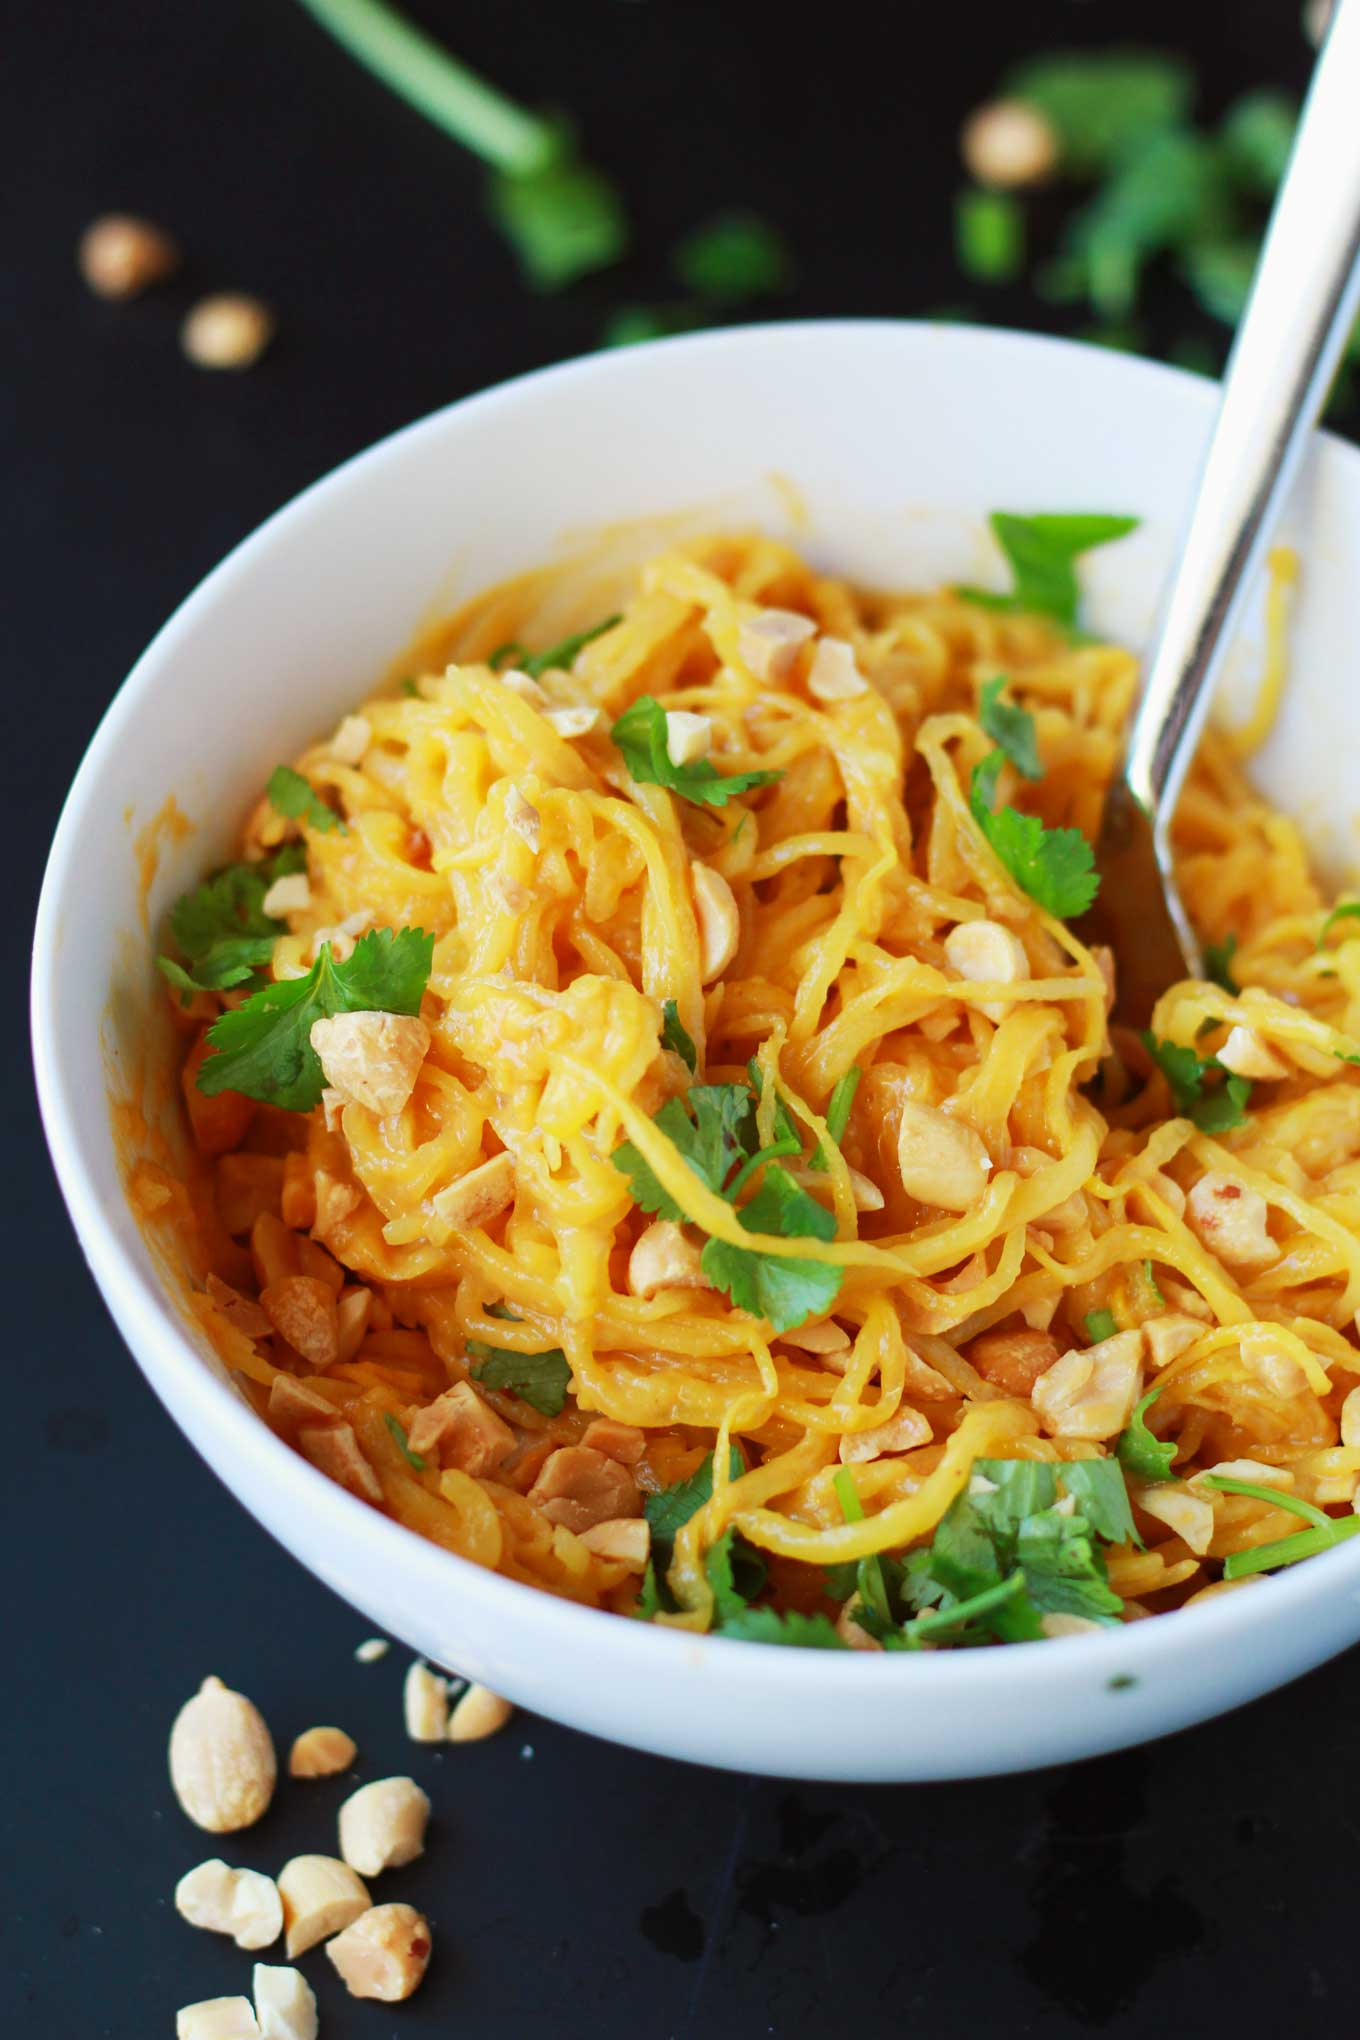 Spaghetti Squash Peanut Noodles | Vegan | Plant-based | WFPB | Gluten-free | Oil-Free | Recipe | http://www.eatwithinyourmeans.com/